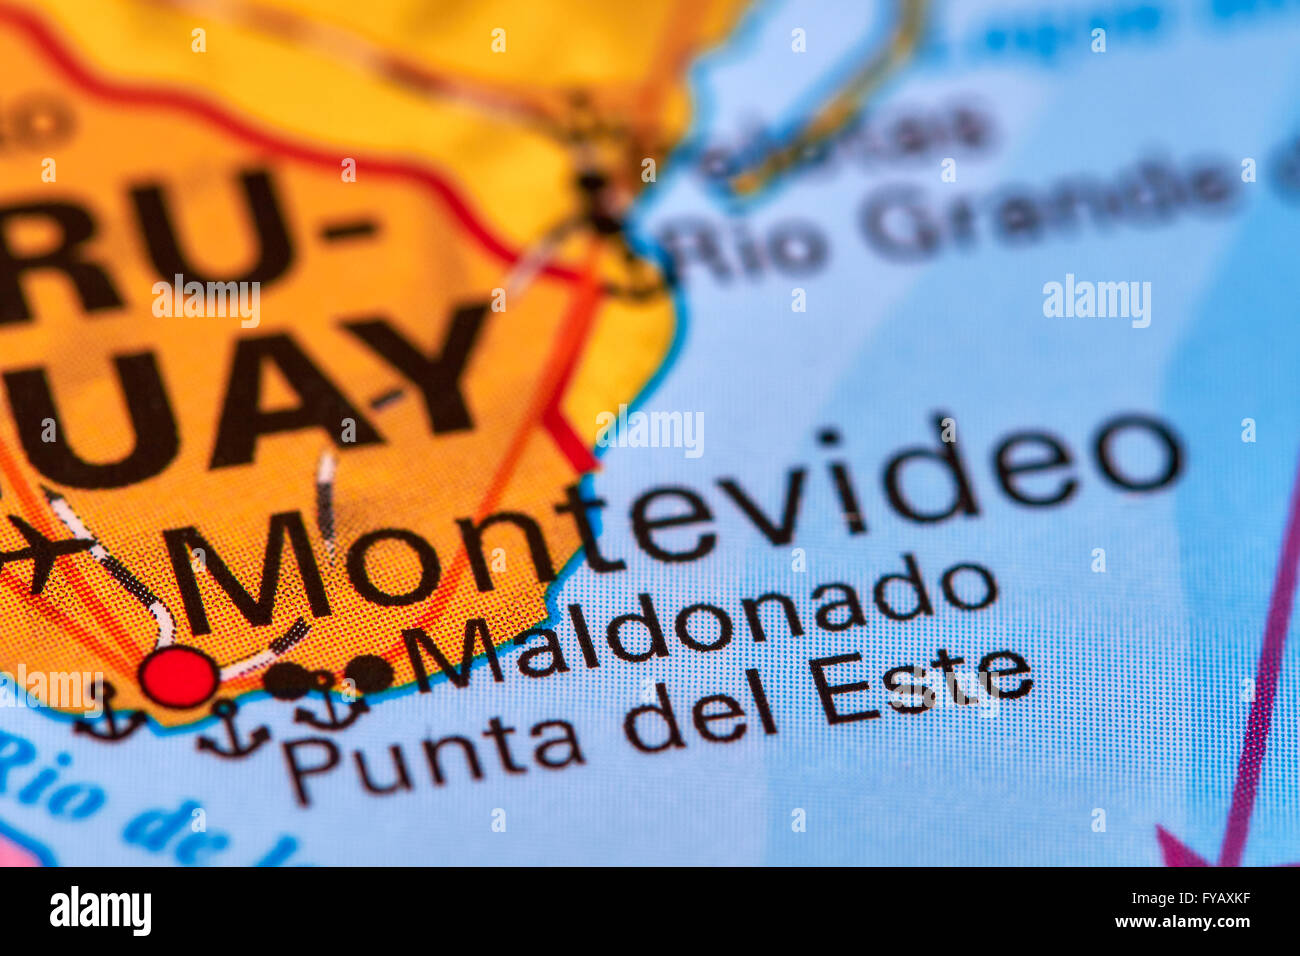 Montevideo, Capital City of Uruguay on the World Map - Stock Image